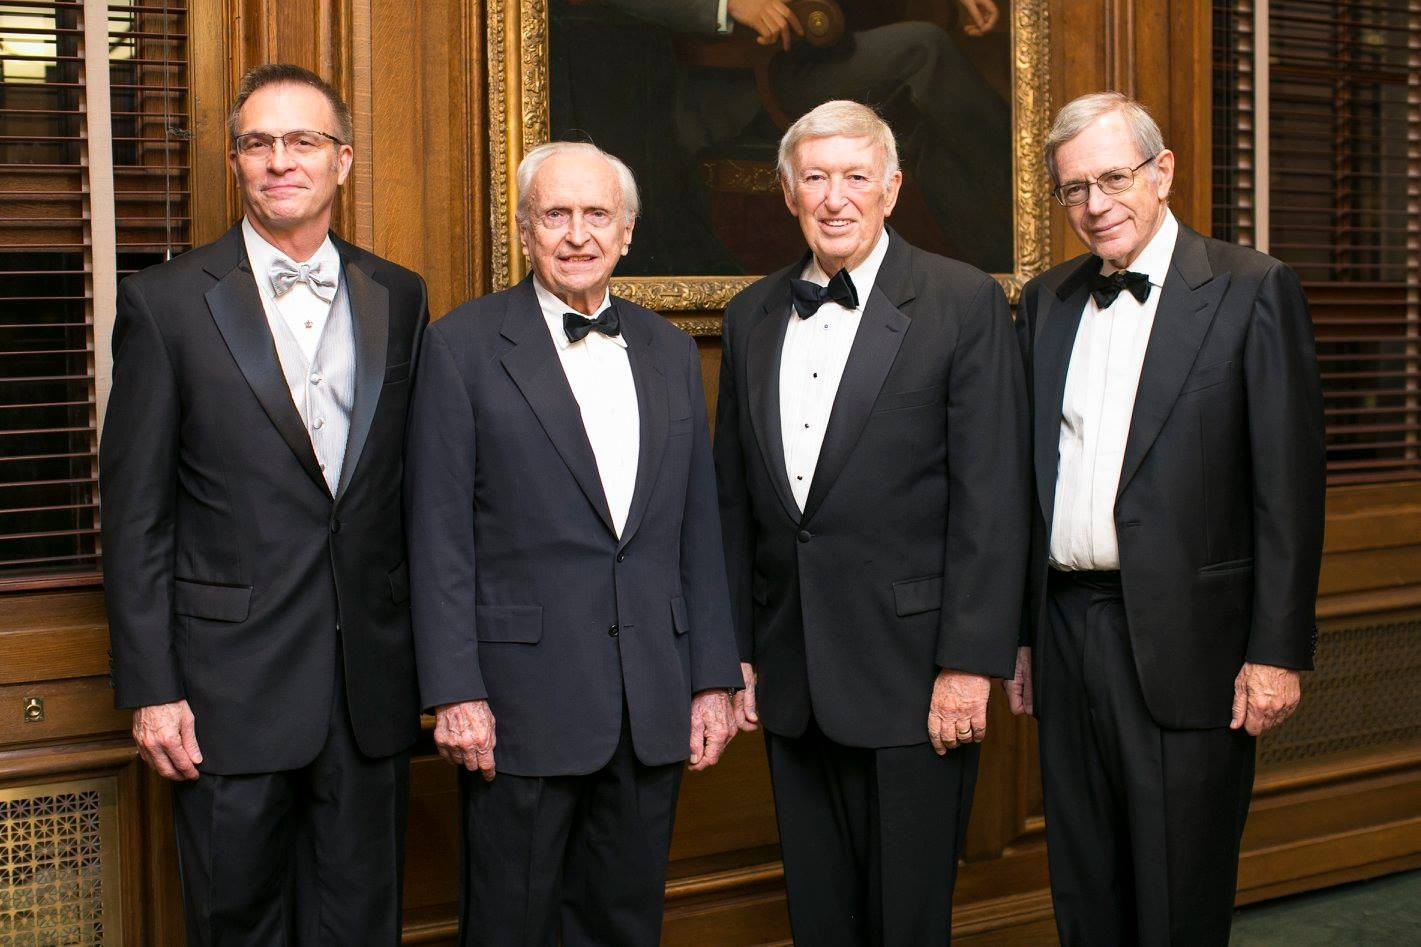 Photo of 2016 Hamilton Honorees with Columbia College Dean James J. Valentini